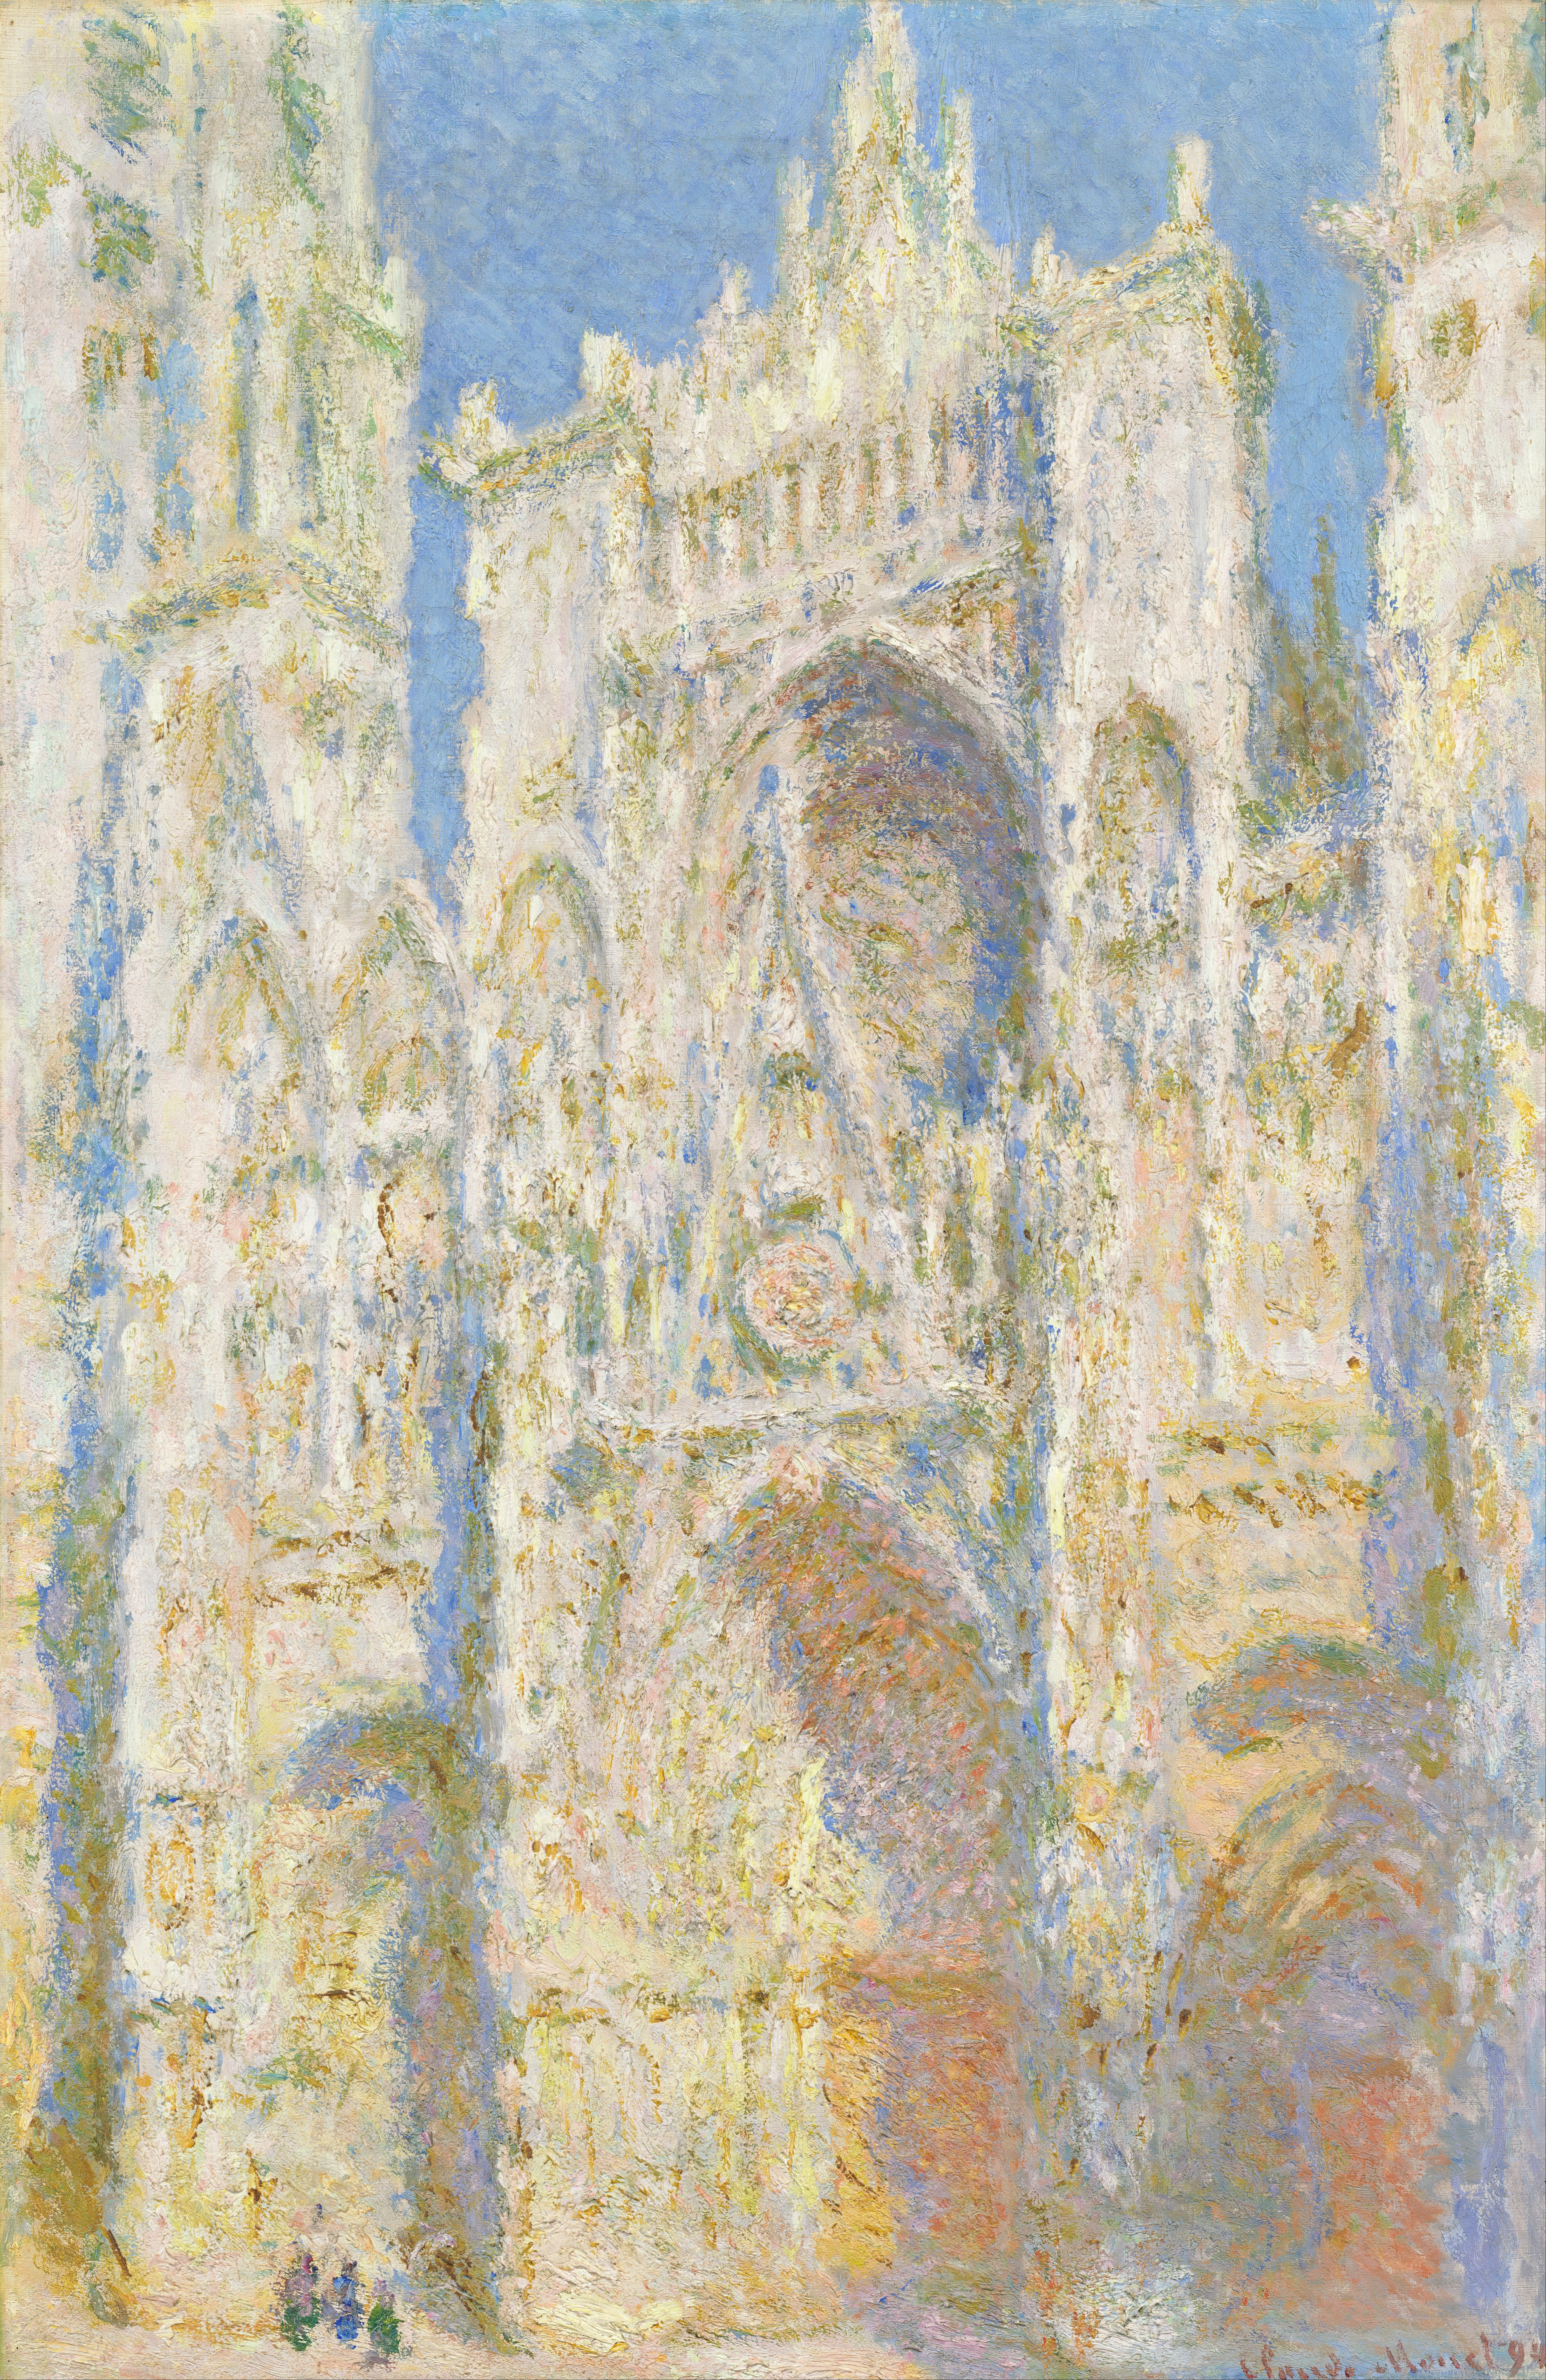 Impressionism Monet Rouen Cathedral - 20479.5KB